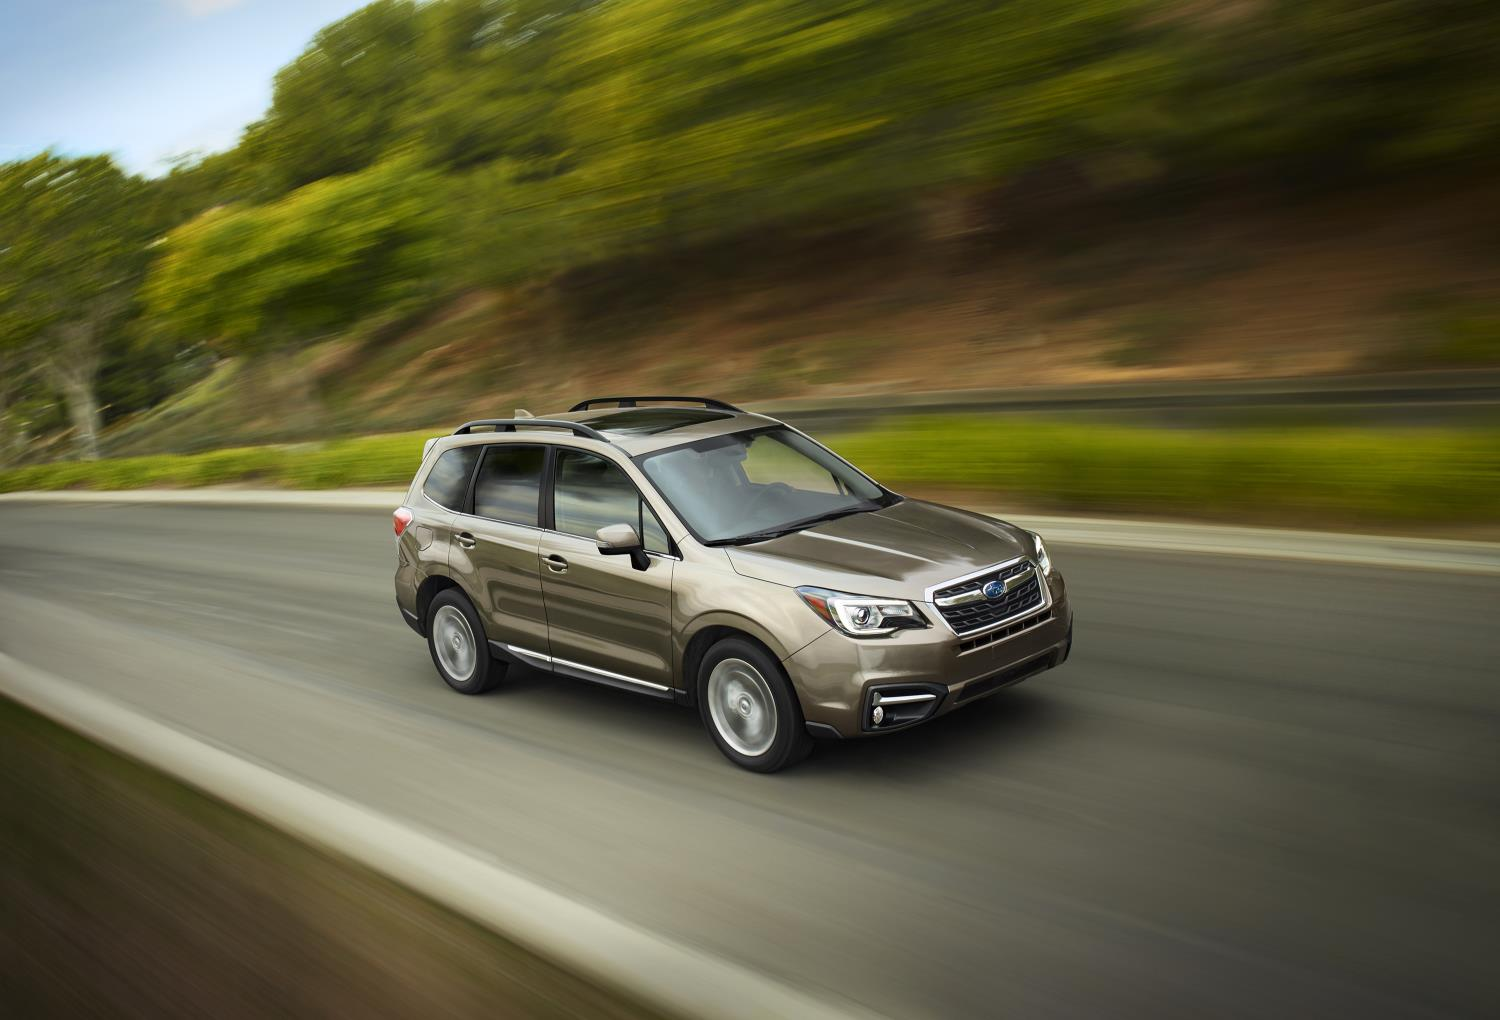 2017 Subaru Forester Unveiled, Comes with More Tech and ...